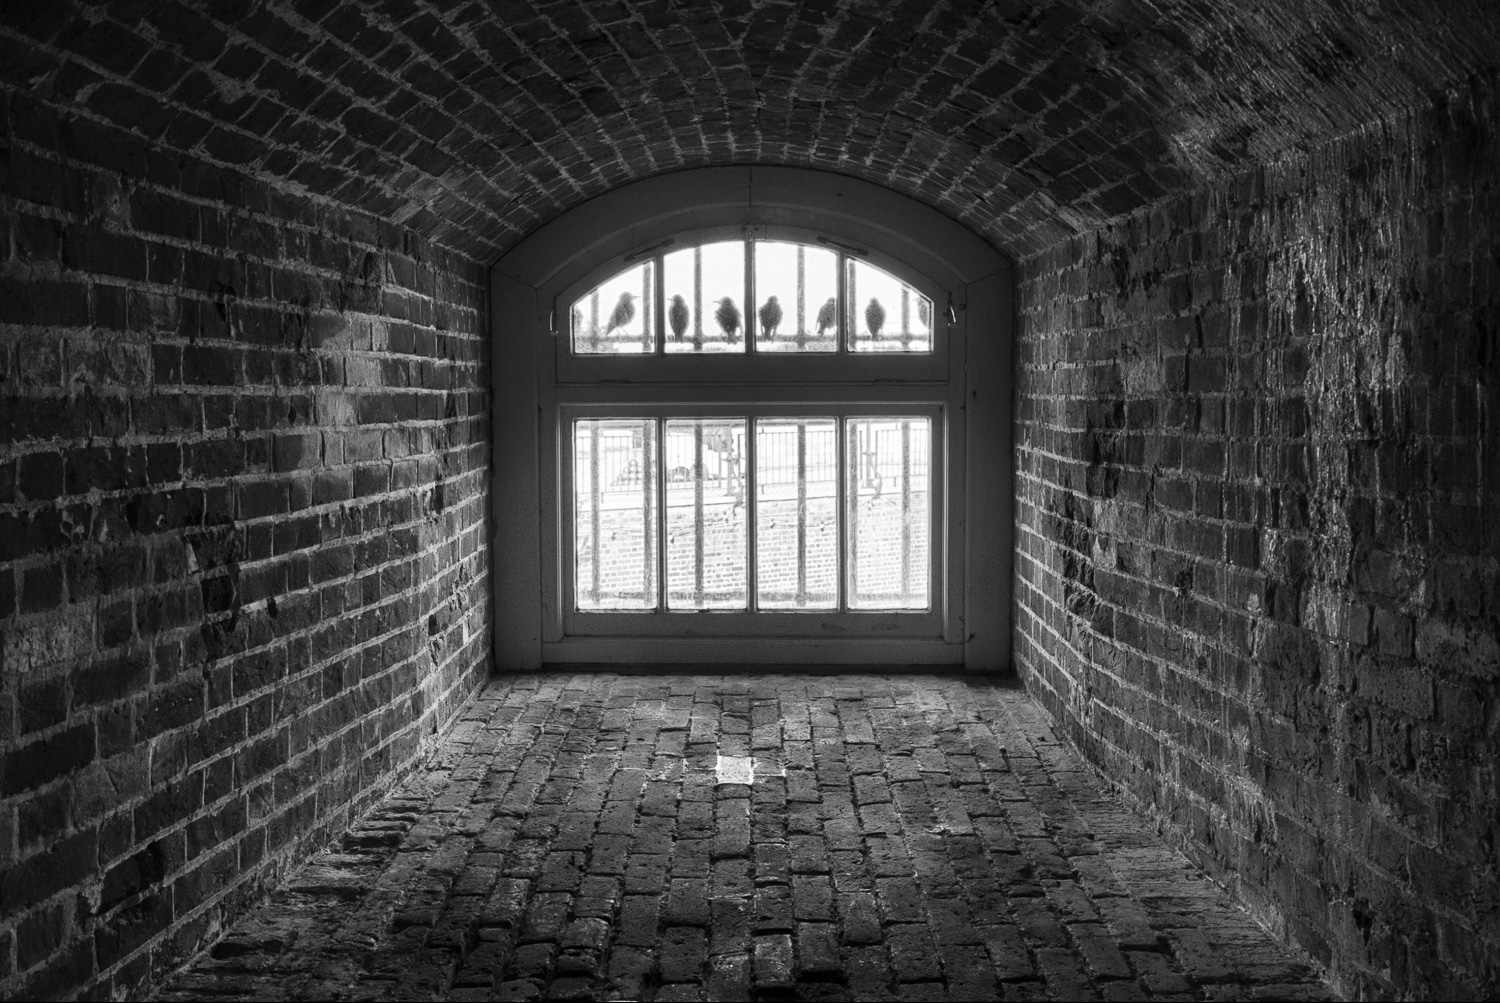 brick wall with birds in a window - Composition Tips for Drawing the Viewer's Eye Through Your Photographs